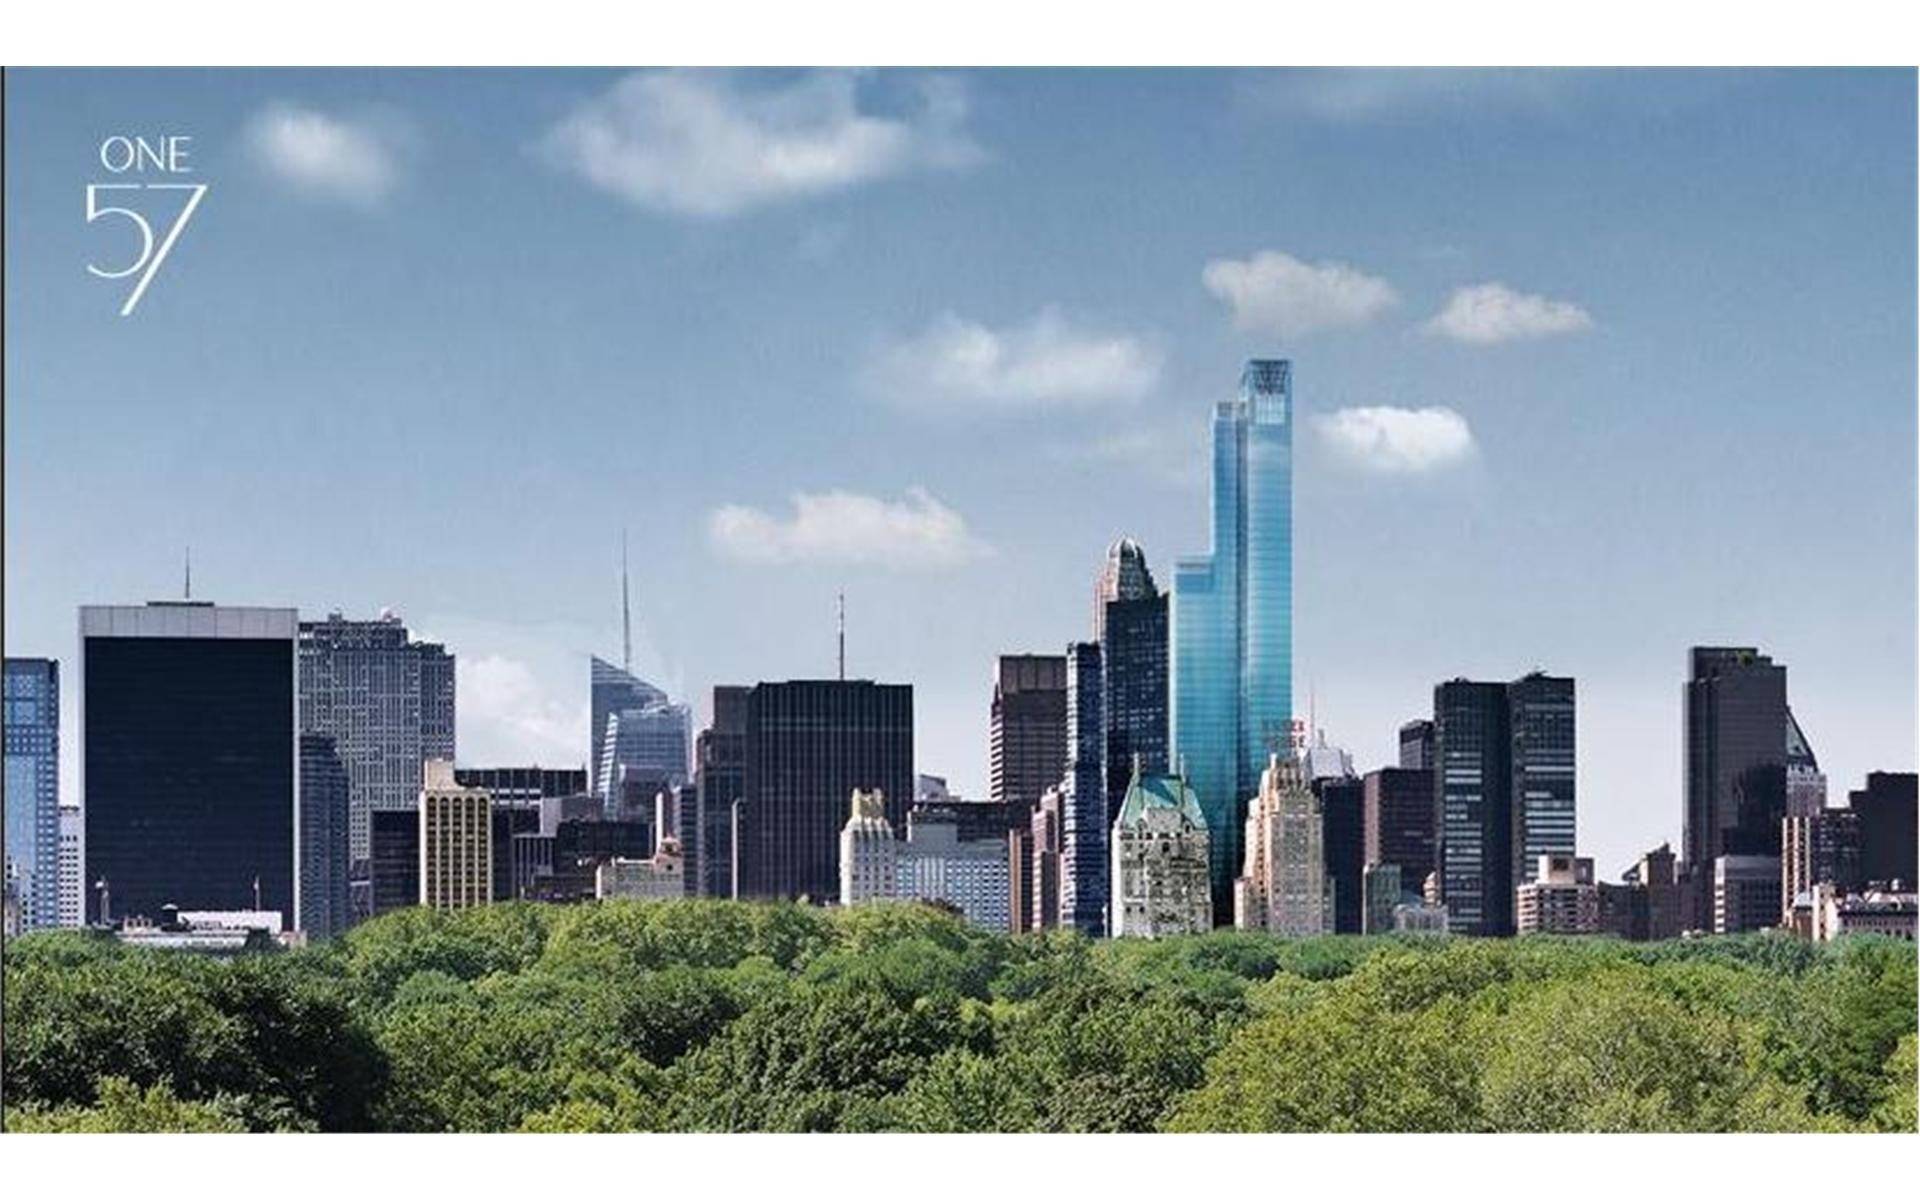 14. Condominiums for Sale at One57, 157 West 57th St, 45C Midtown West, New York, NY 10019